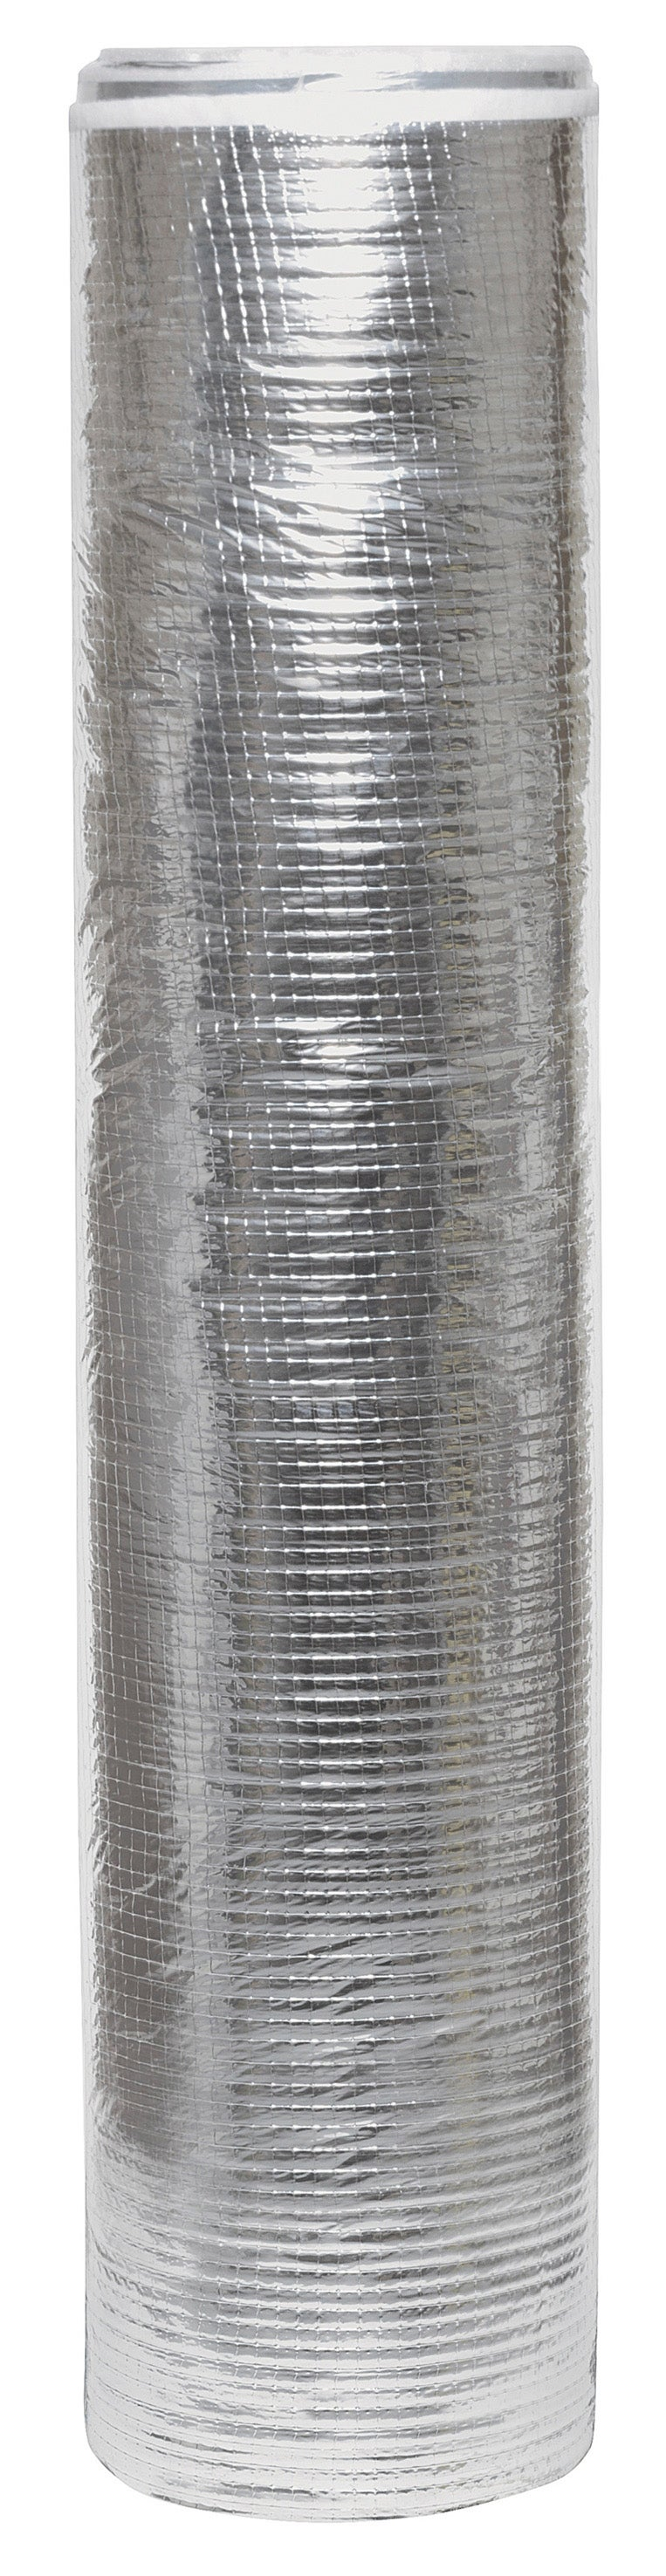 Rouleau Isolant Mince Isothermo 24 16m Leroy Merlin